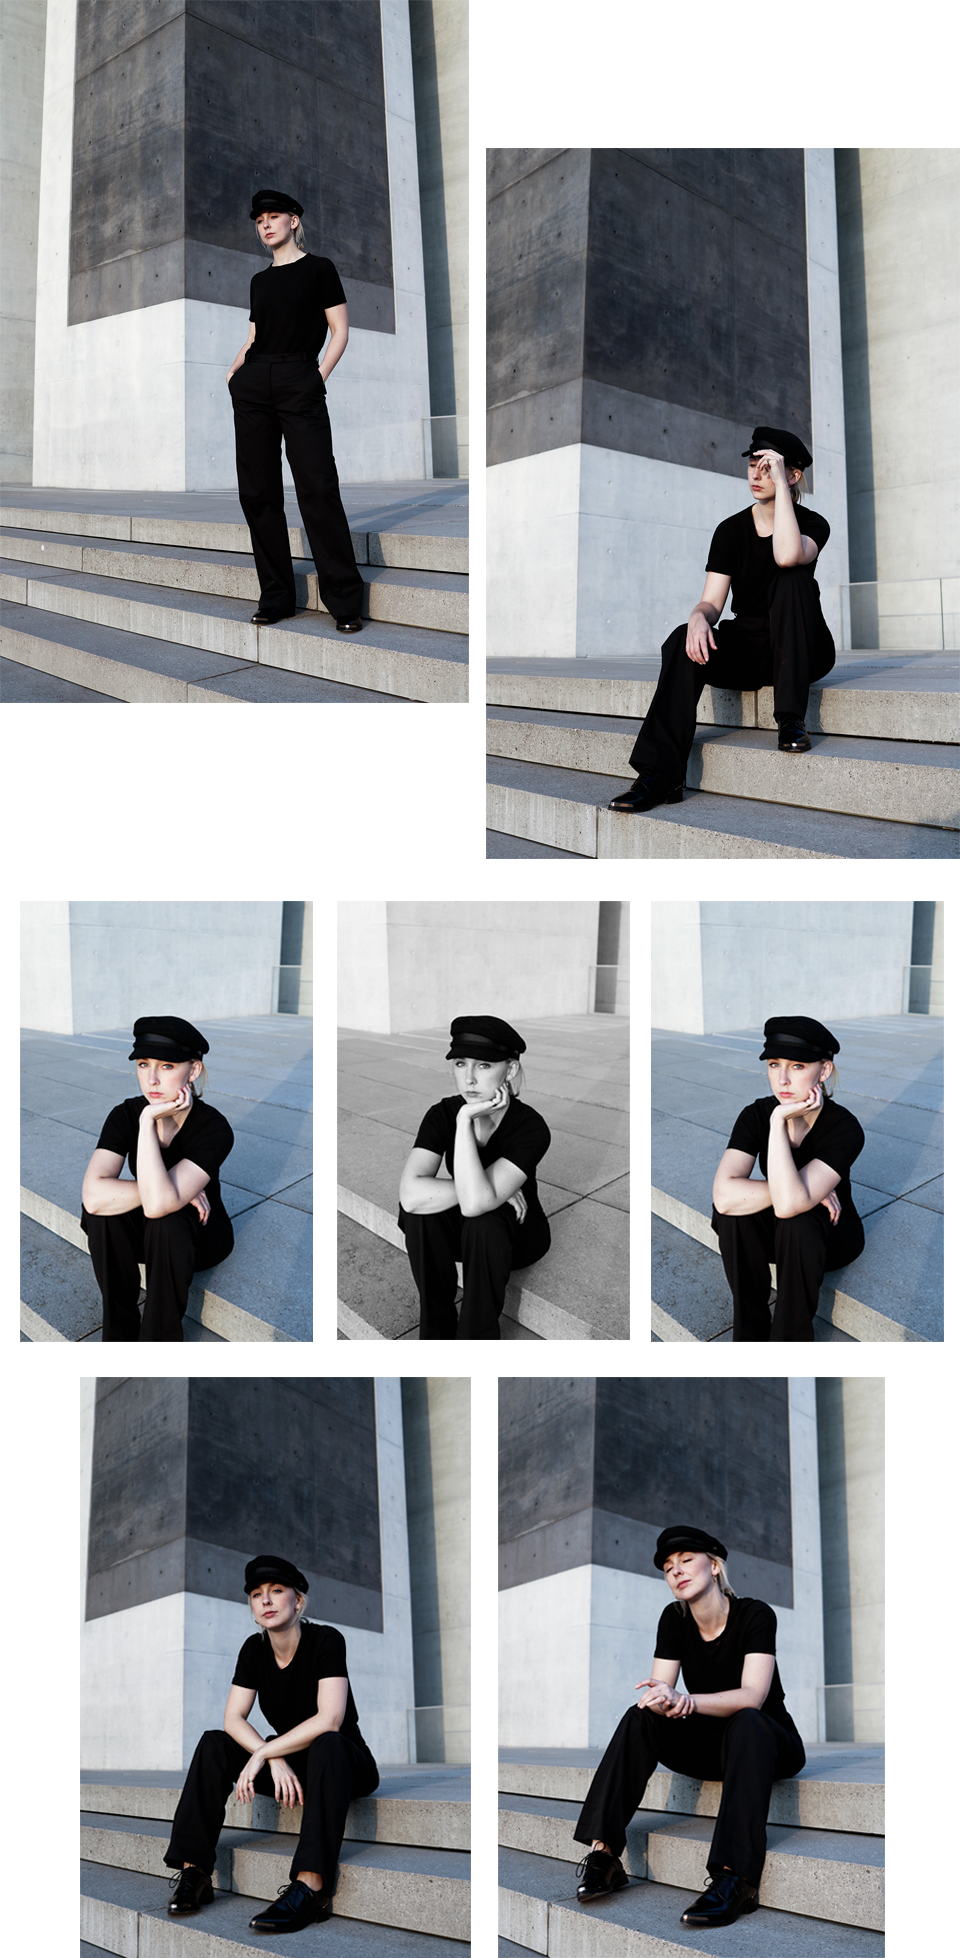 noa-noir-fashion-outfit-all-black-bakers-boy-hat-minimal-style-inspiration-1-2.png